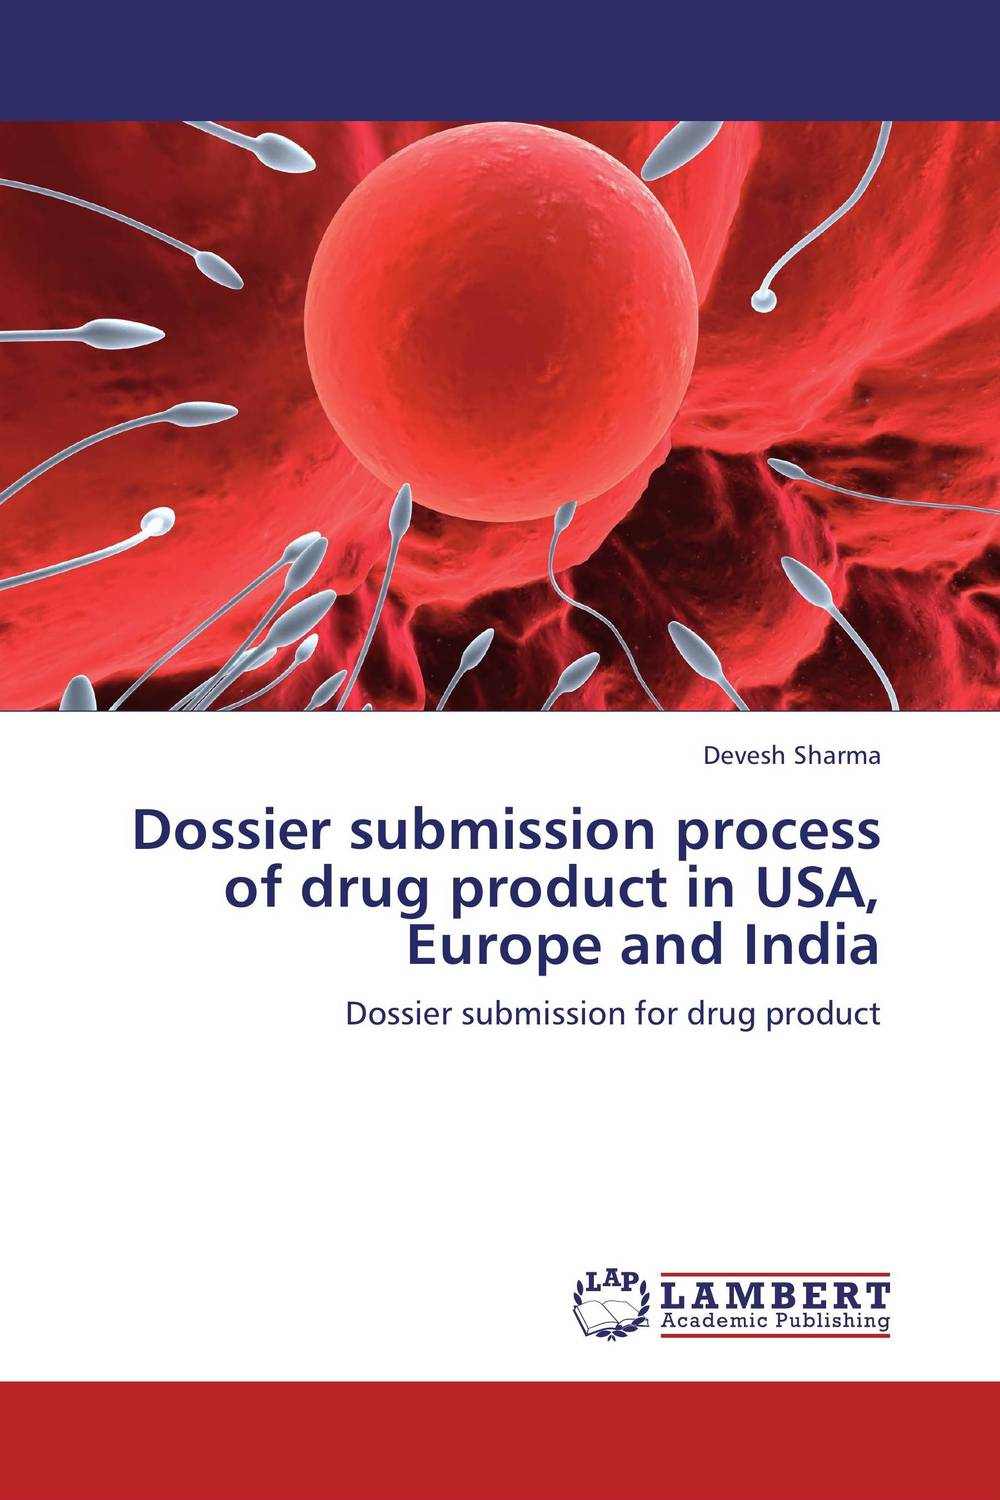 Dossier submission process of drug product in USA, Europe and India the submission